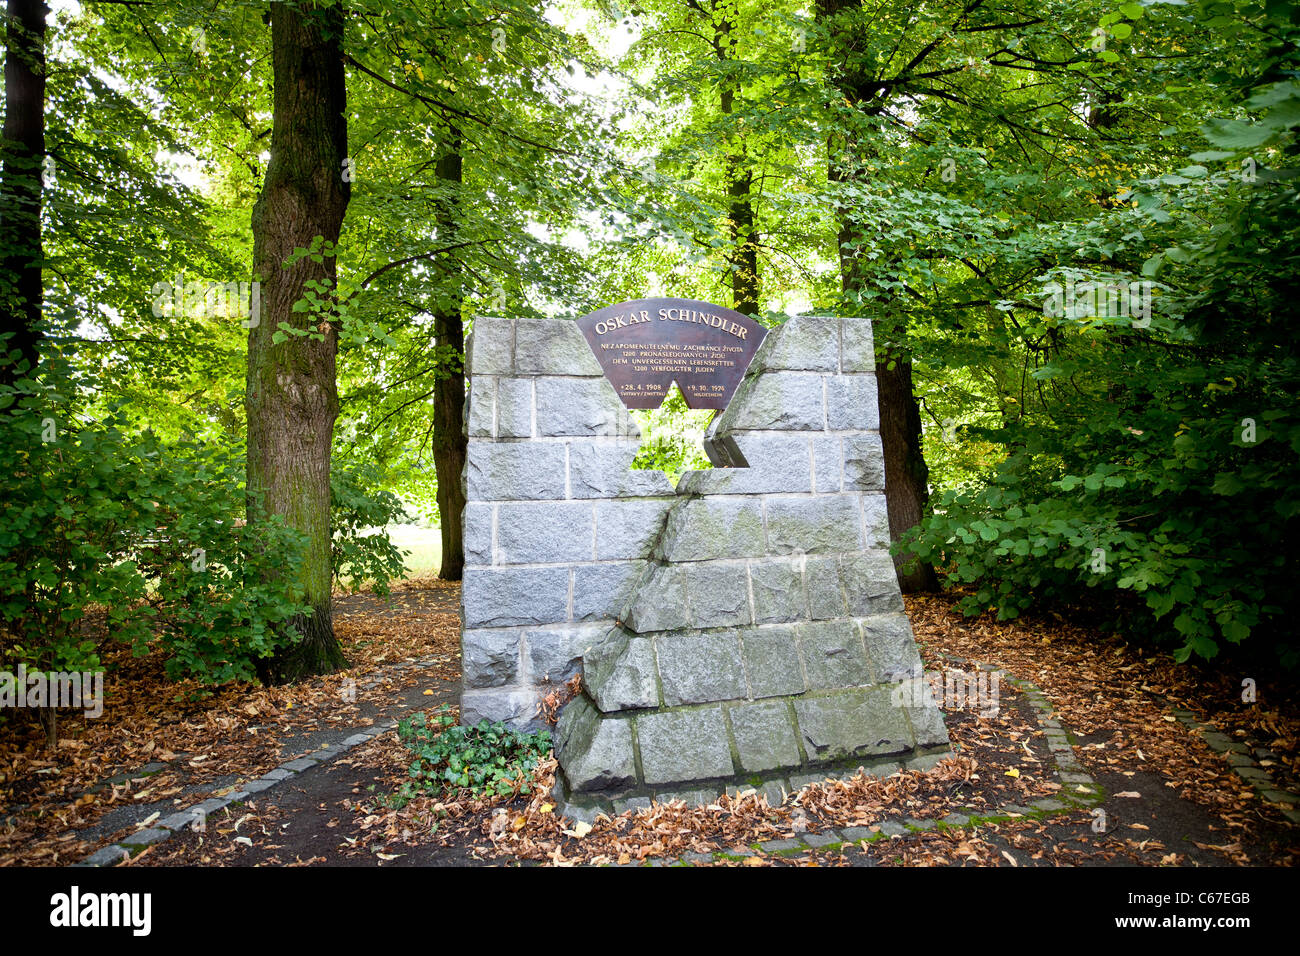 Monument to Oskar Schindler over the road vis-a-vis of his birthplace in his native town. - Stock Image